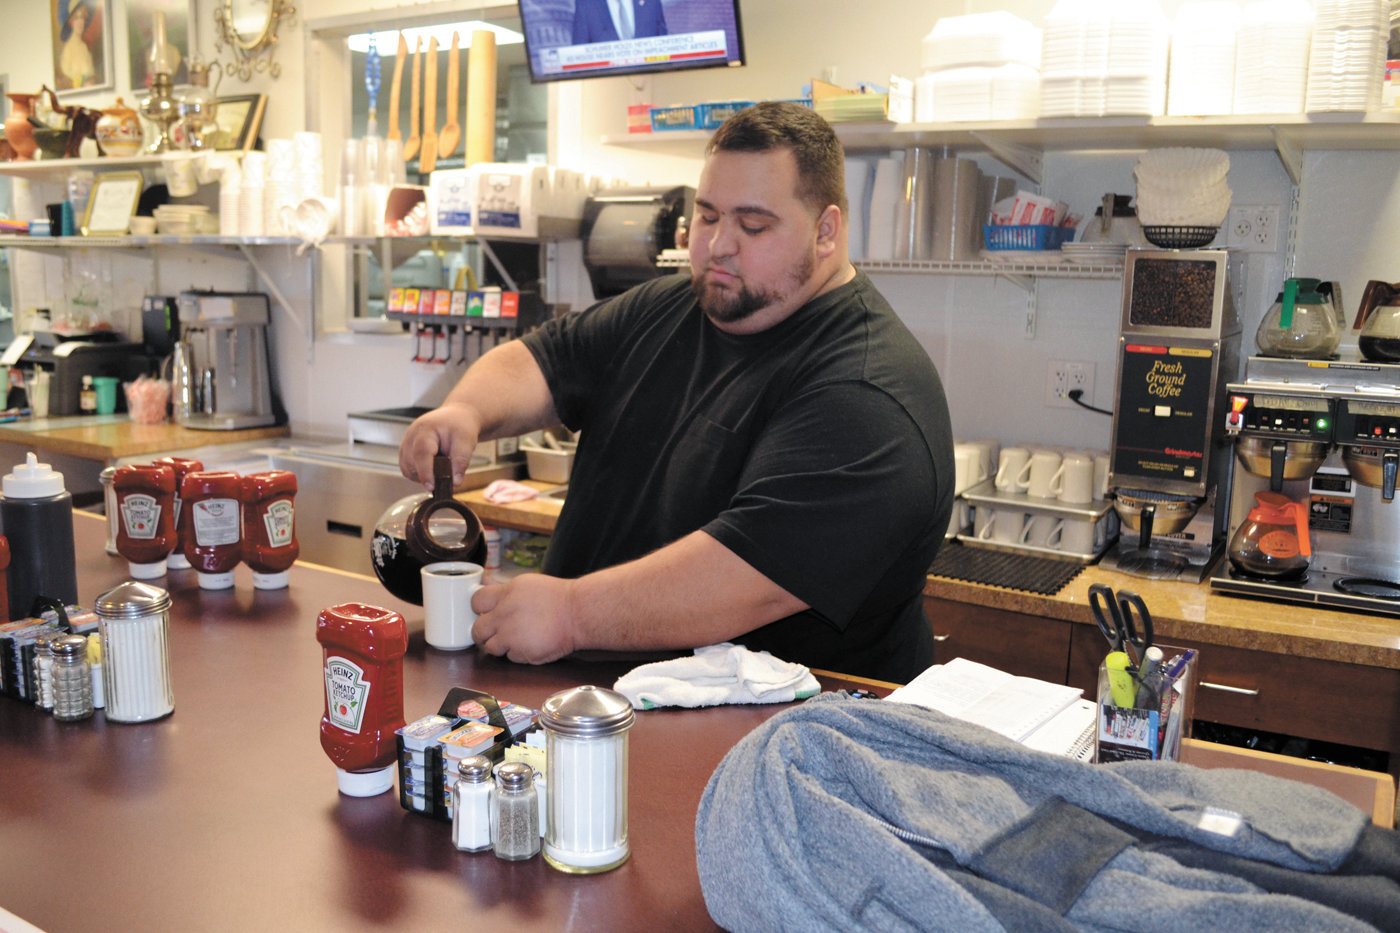 WARM WELCOME: M&M Diner and Pizzeria's Marios Kirios pours a cup of coffee for a customer on Monday afternoon. Kirios said the restaurant will be open from 7 a.m. to 1 p.m. on Christmas Day with a breakfast-only menu.